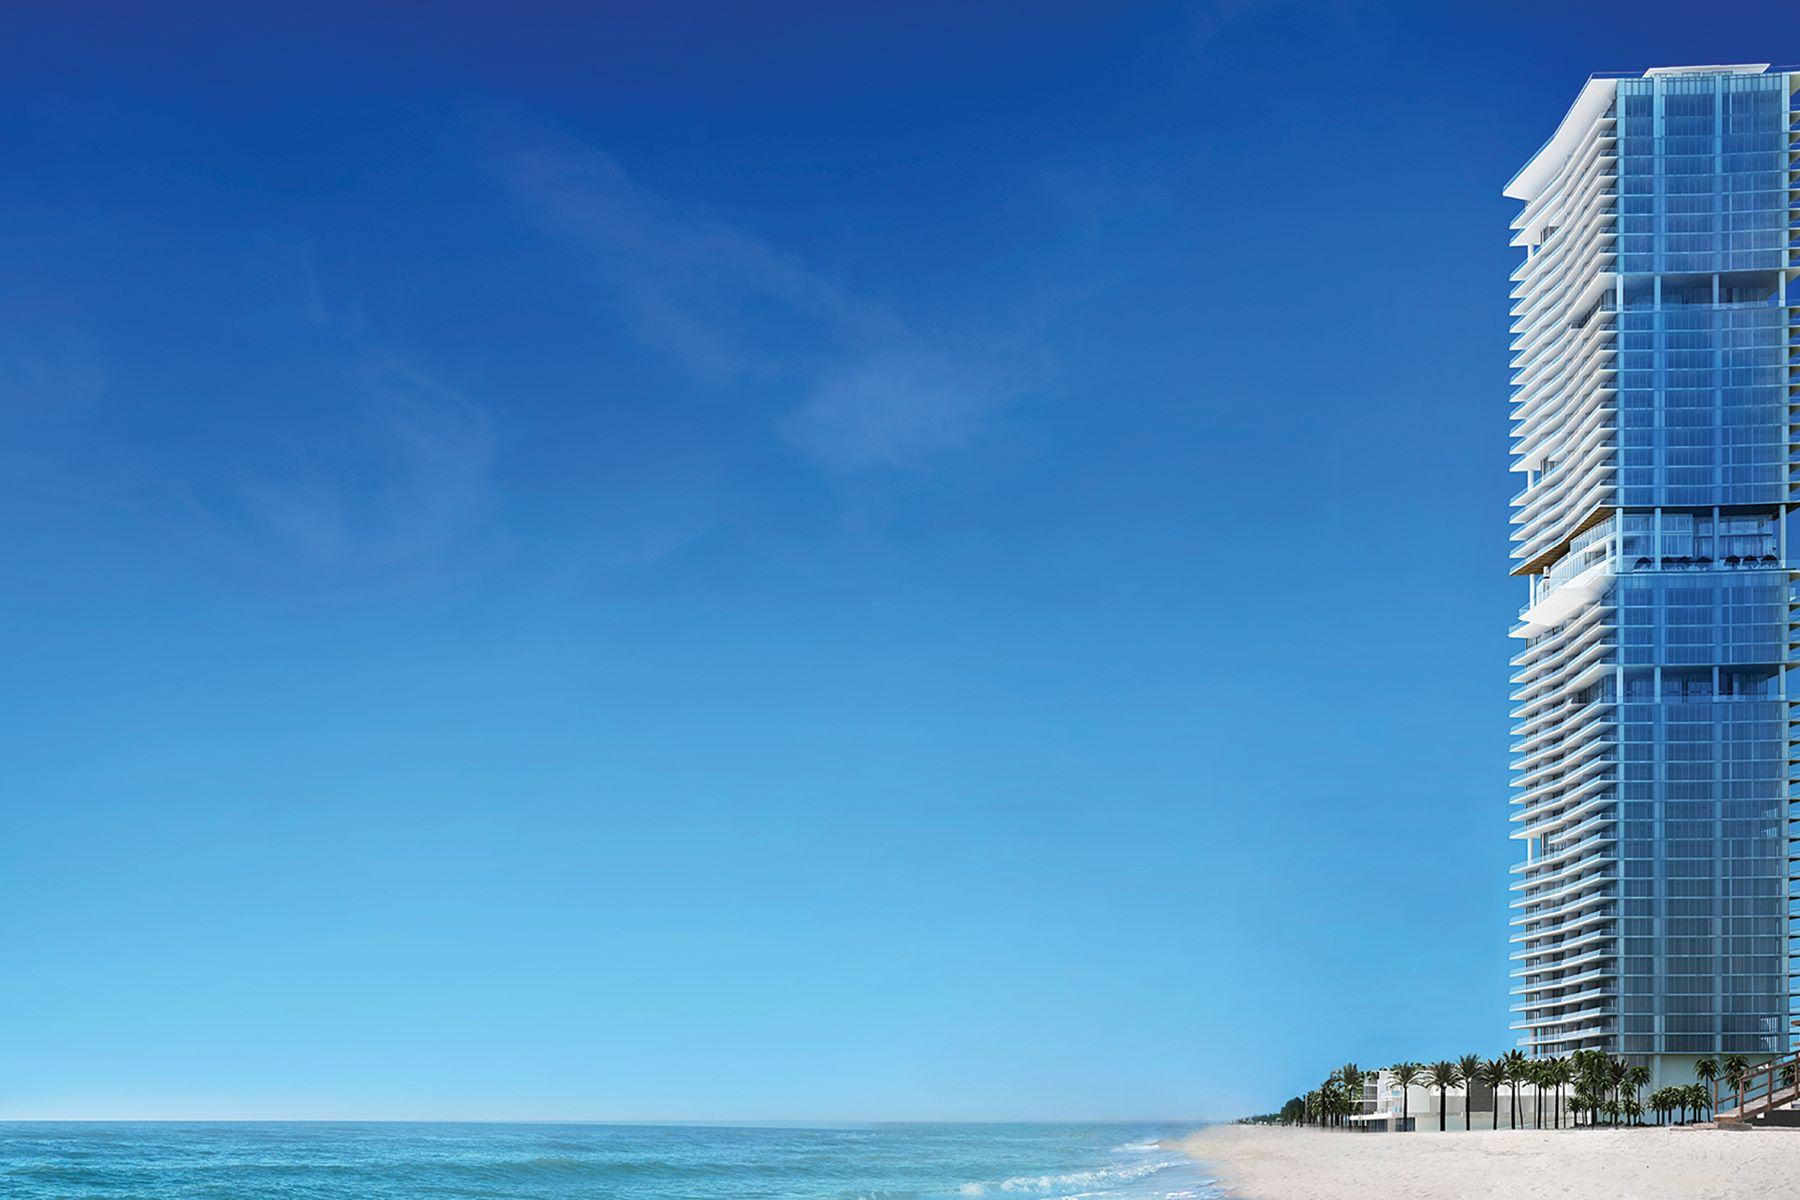 condominiums for Active at 18501 Collins Ave 1001 Sunny Isles Beach, Florida 33160 United States